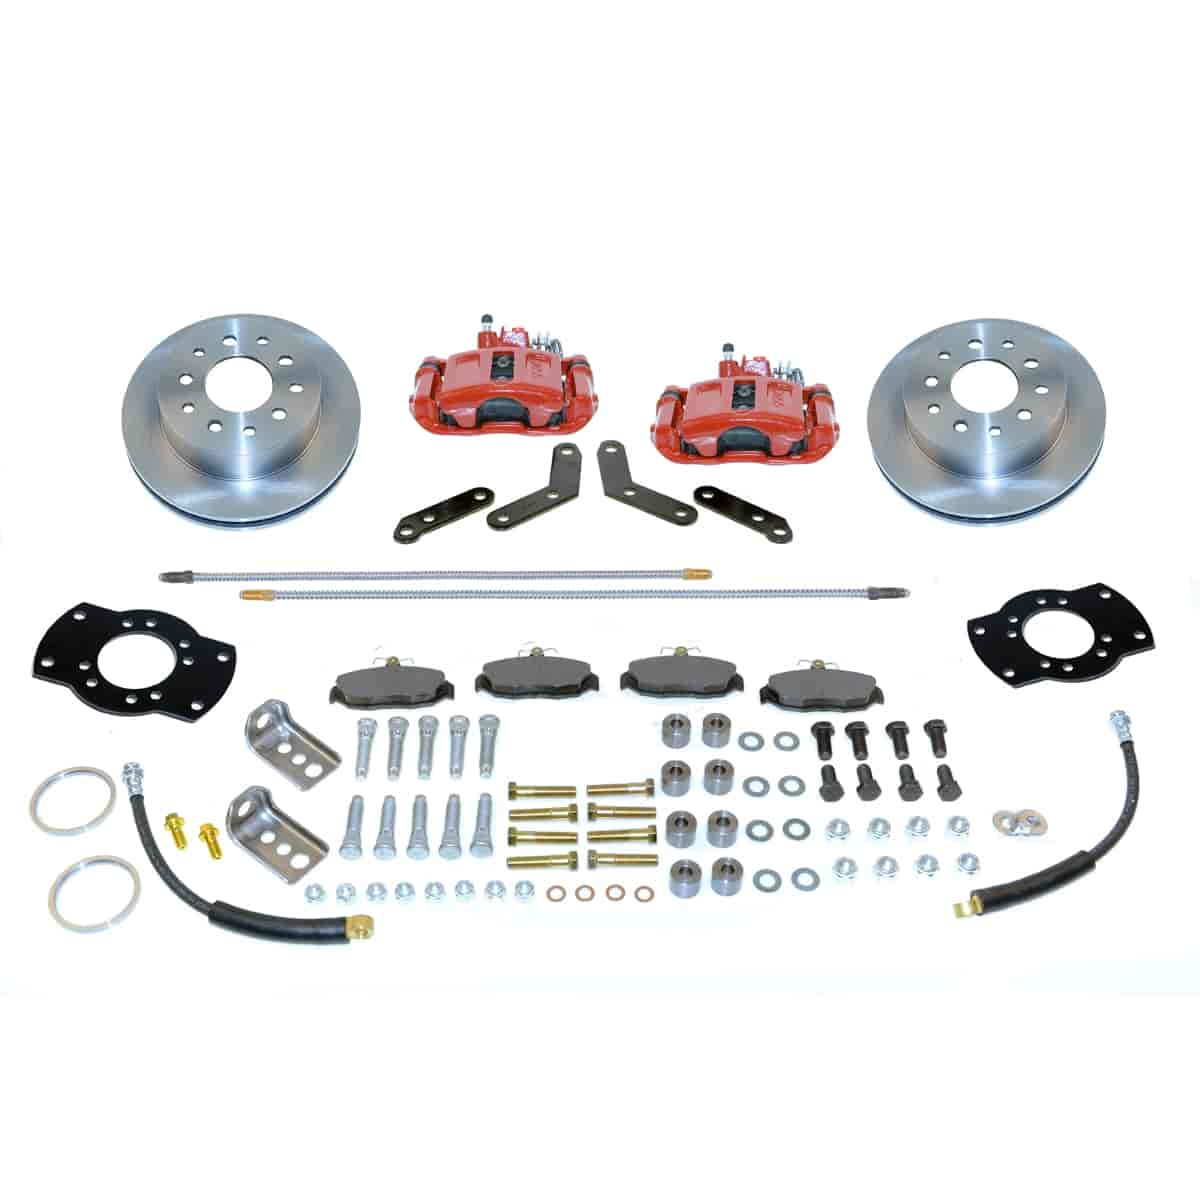 Stainless Steel Brakes A126-1R - Stainless Steel Brakes Single Piston Rear Drum to Disc Brake Conversion Kits